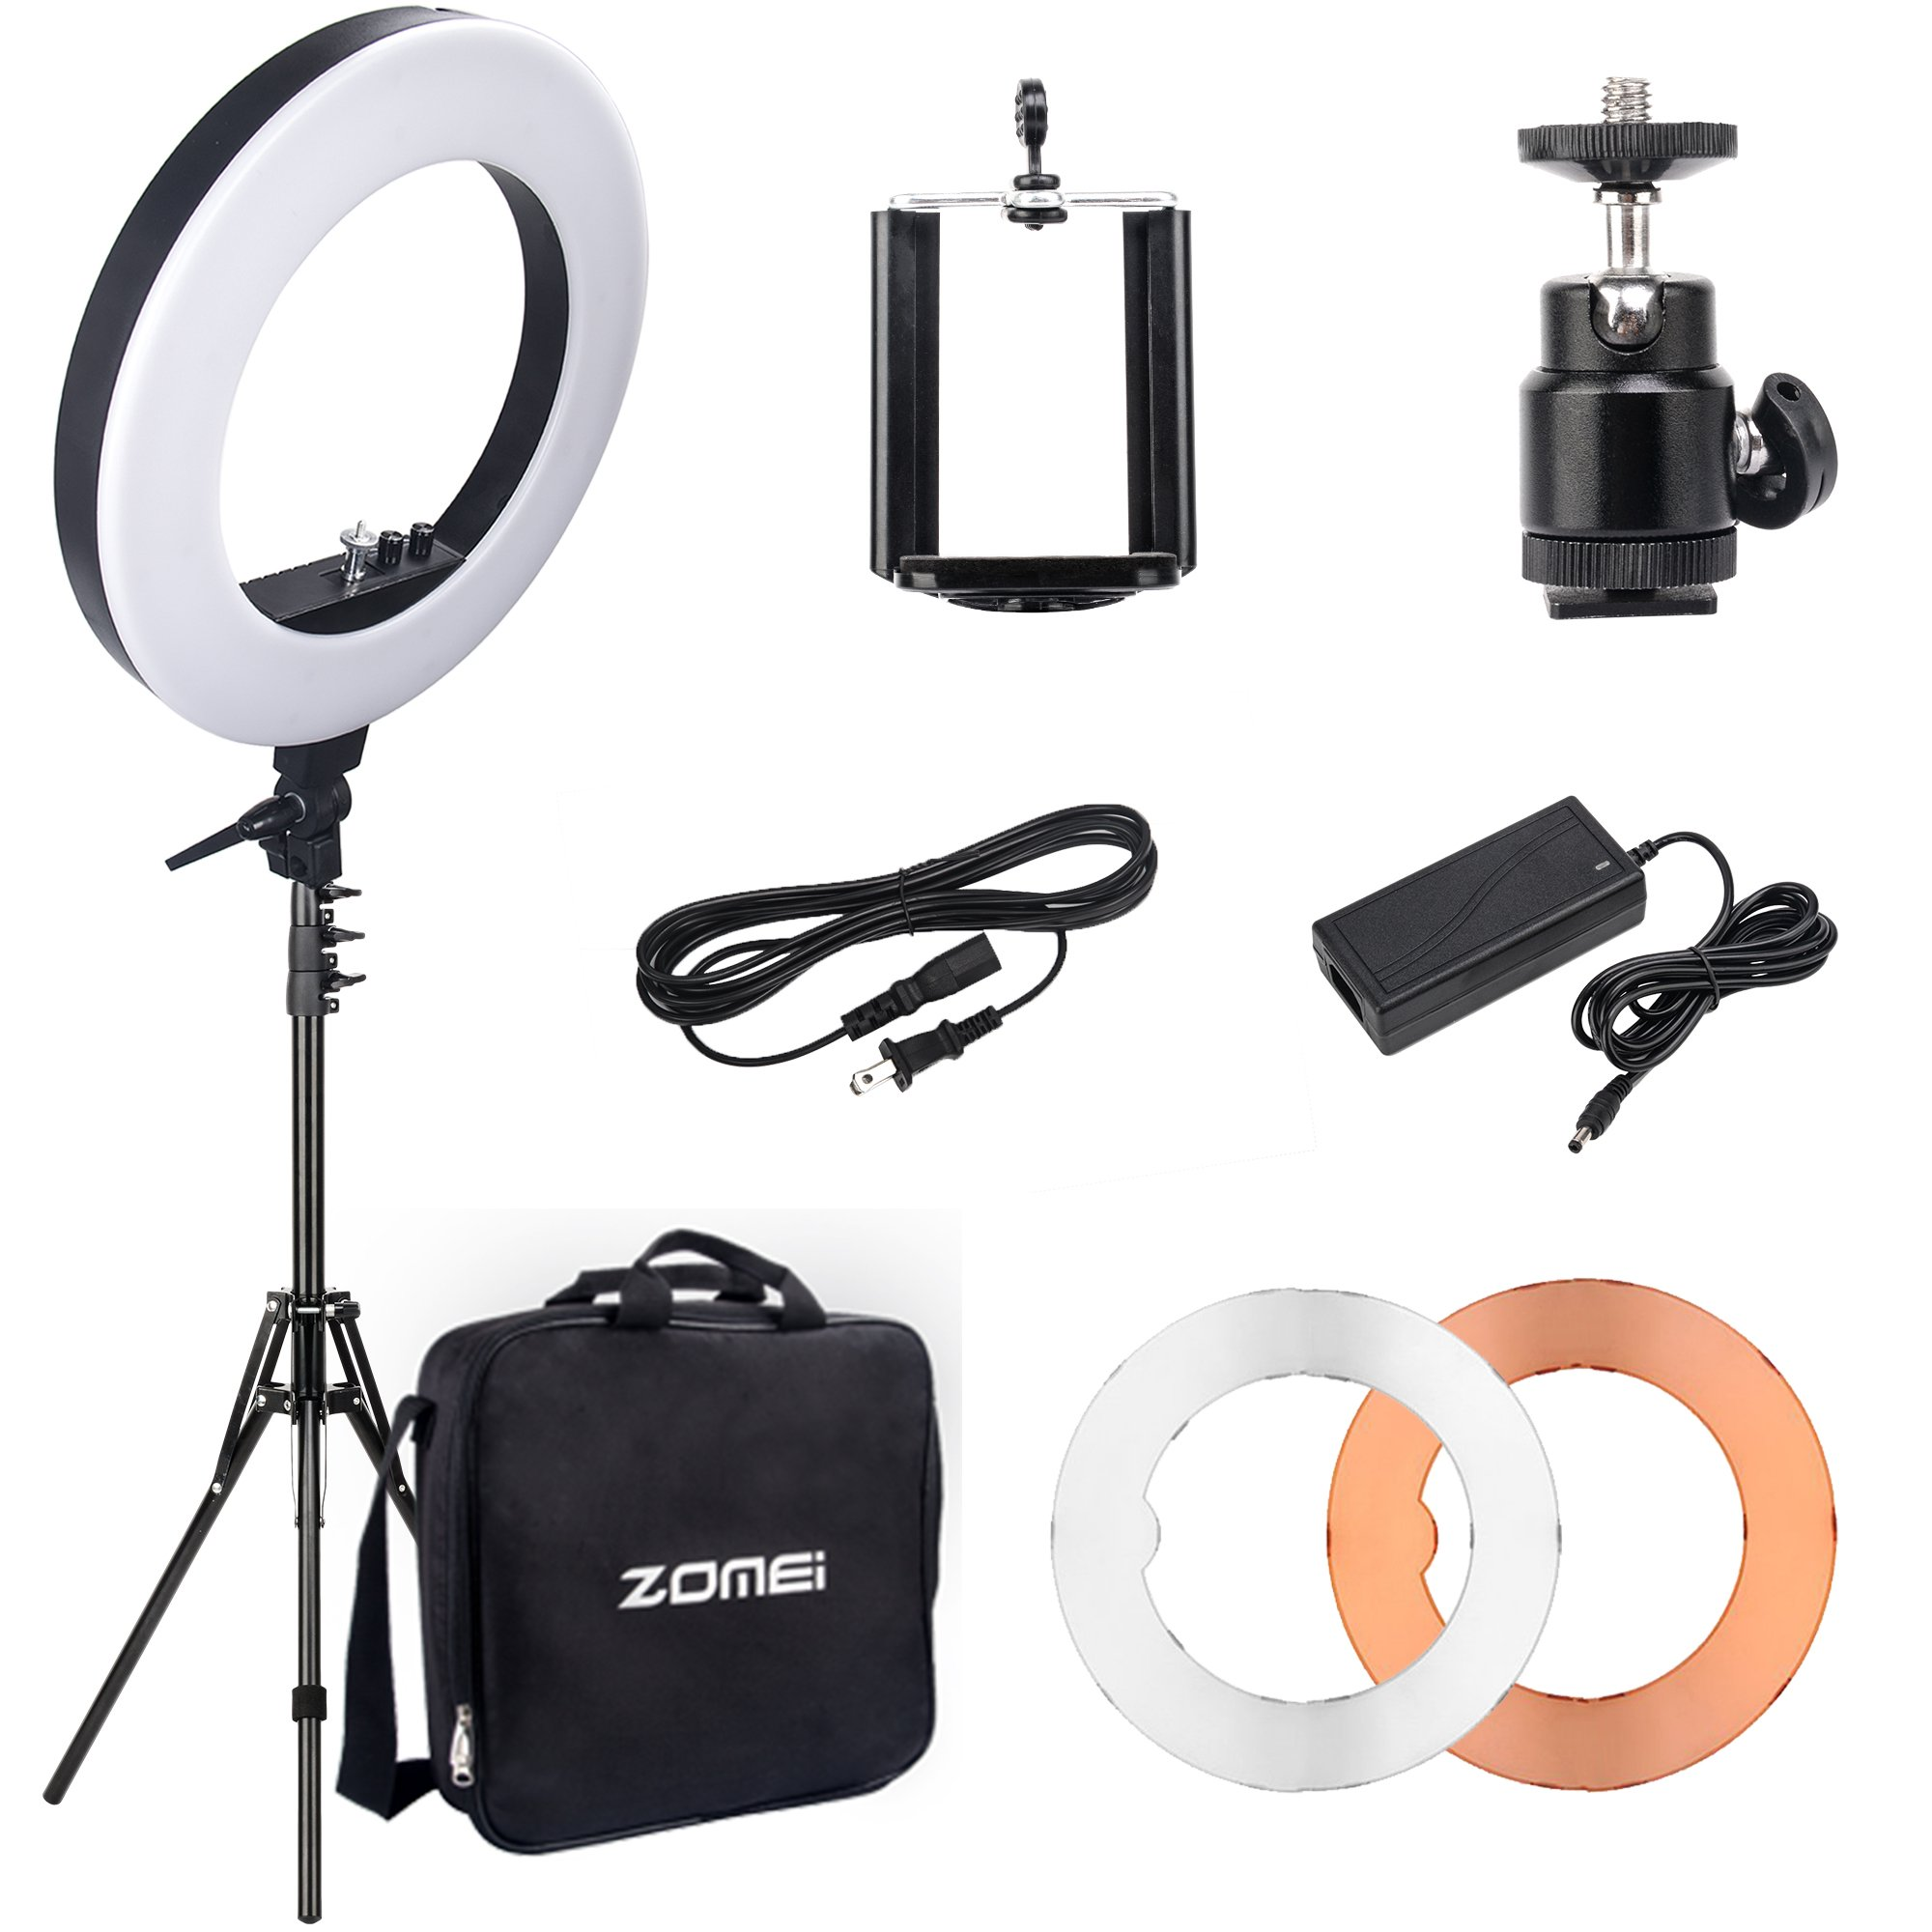 "18""Dimmable LED Ring Light, ZOMEi 5500k Output SMD LED Youtube Video and Makeup Ring Light with Stand, Plastic Color Filter With Portable Carrying Bag"